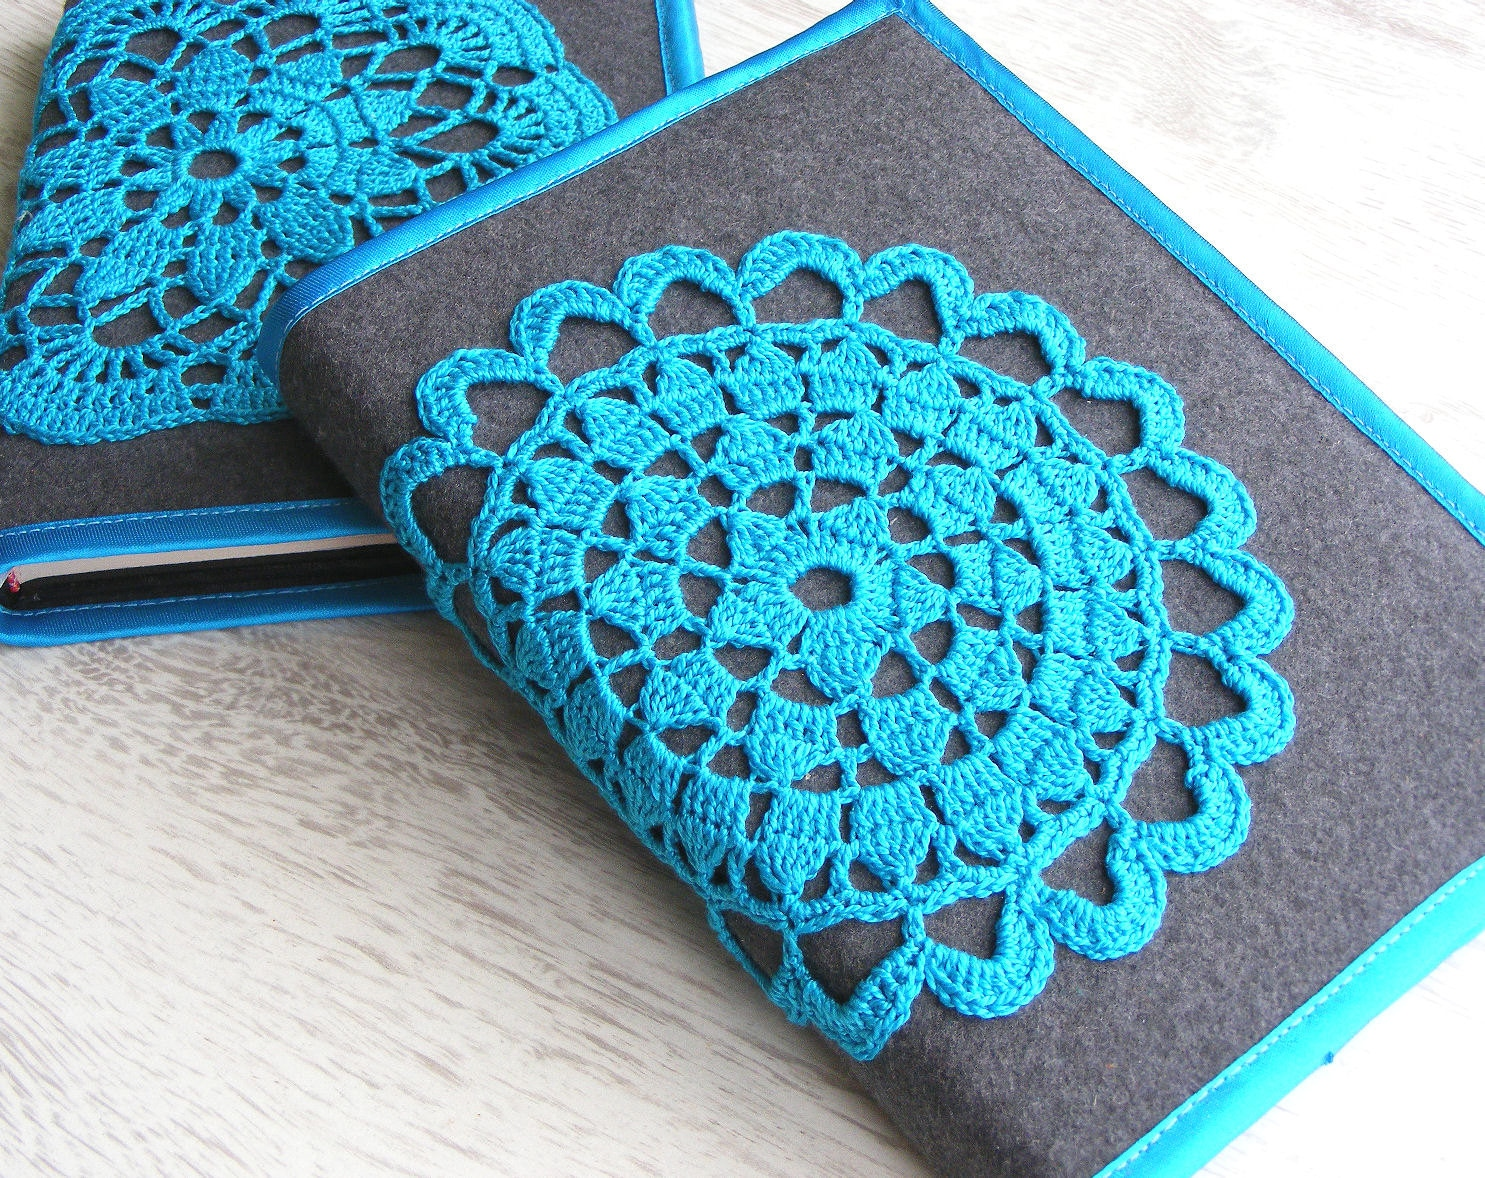 Crochet Lace Book Cover : Notebook cover with crochet motif crocheted journal